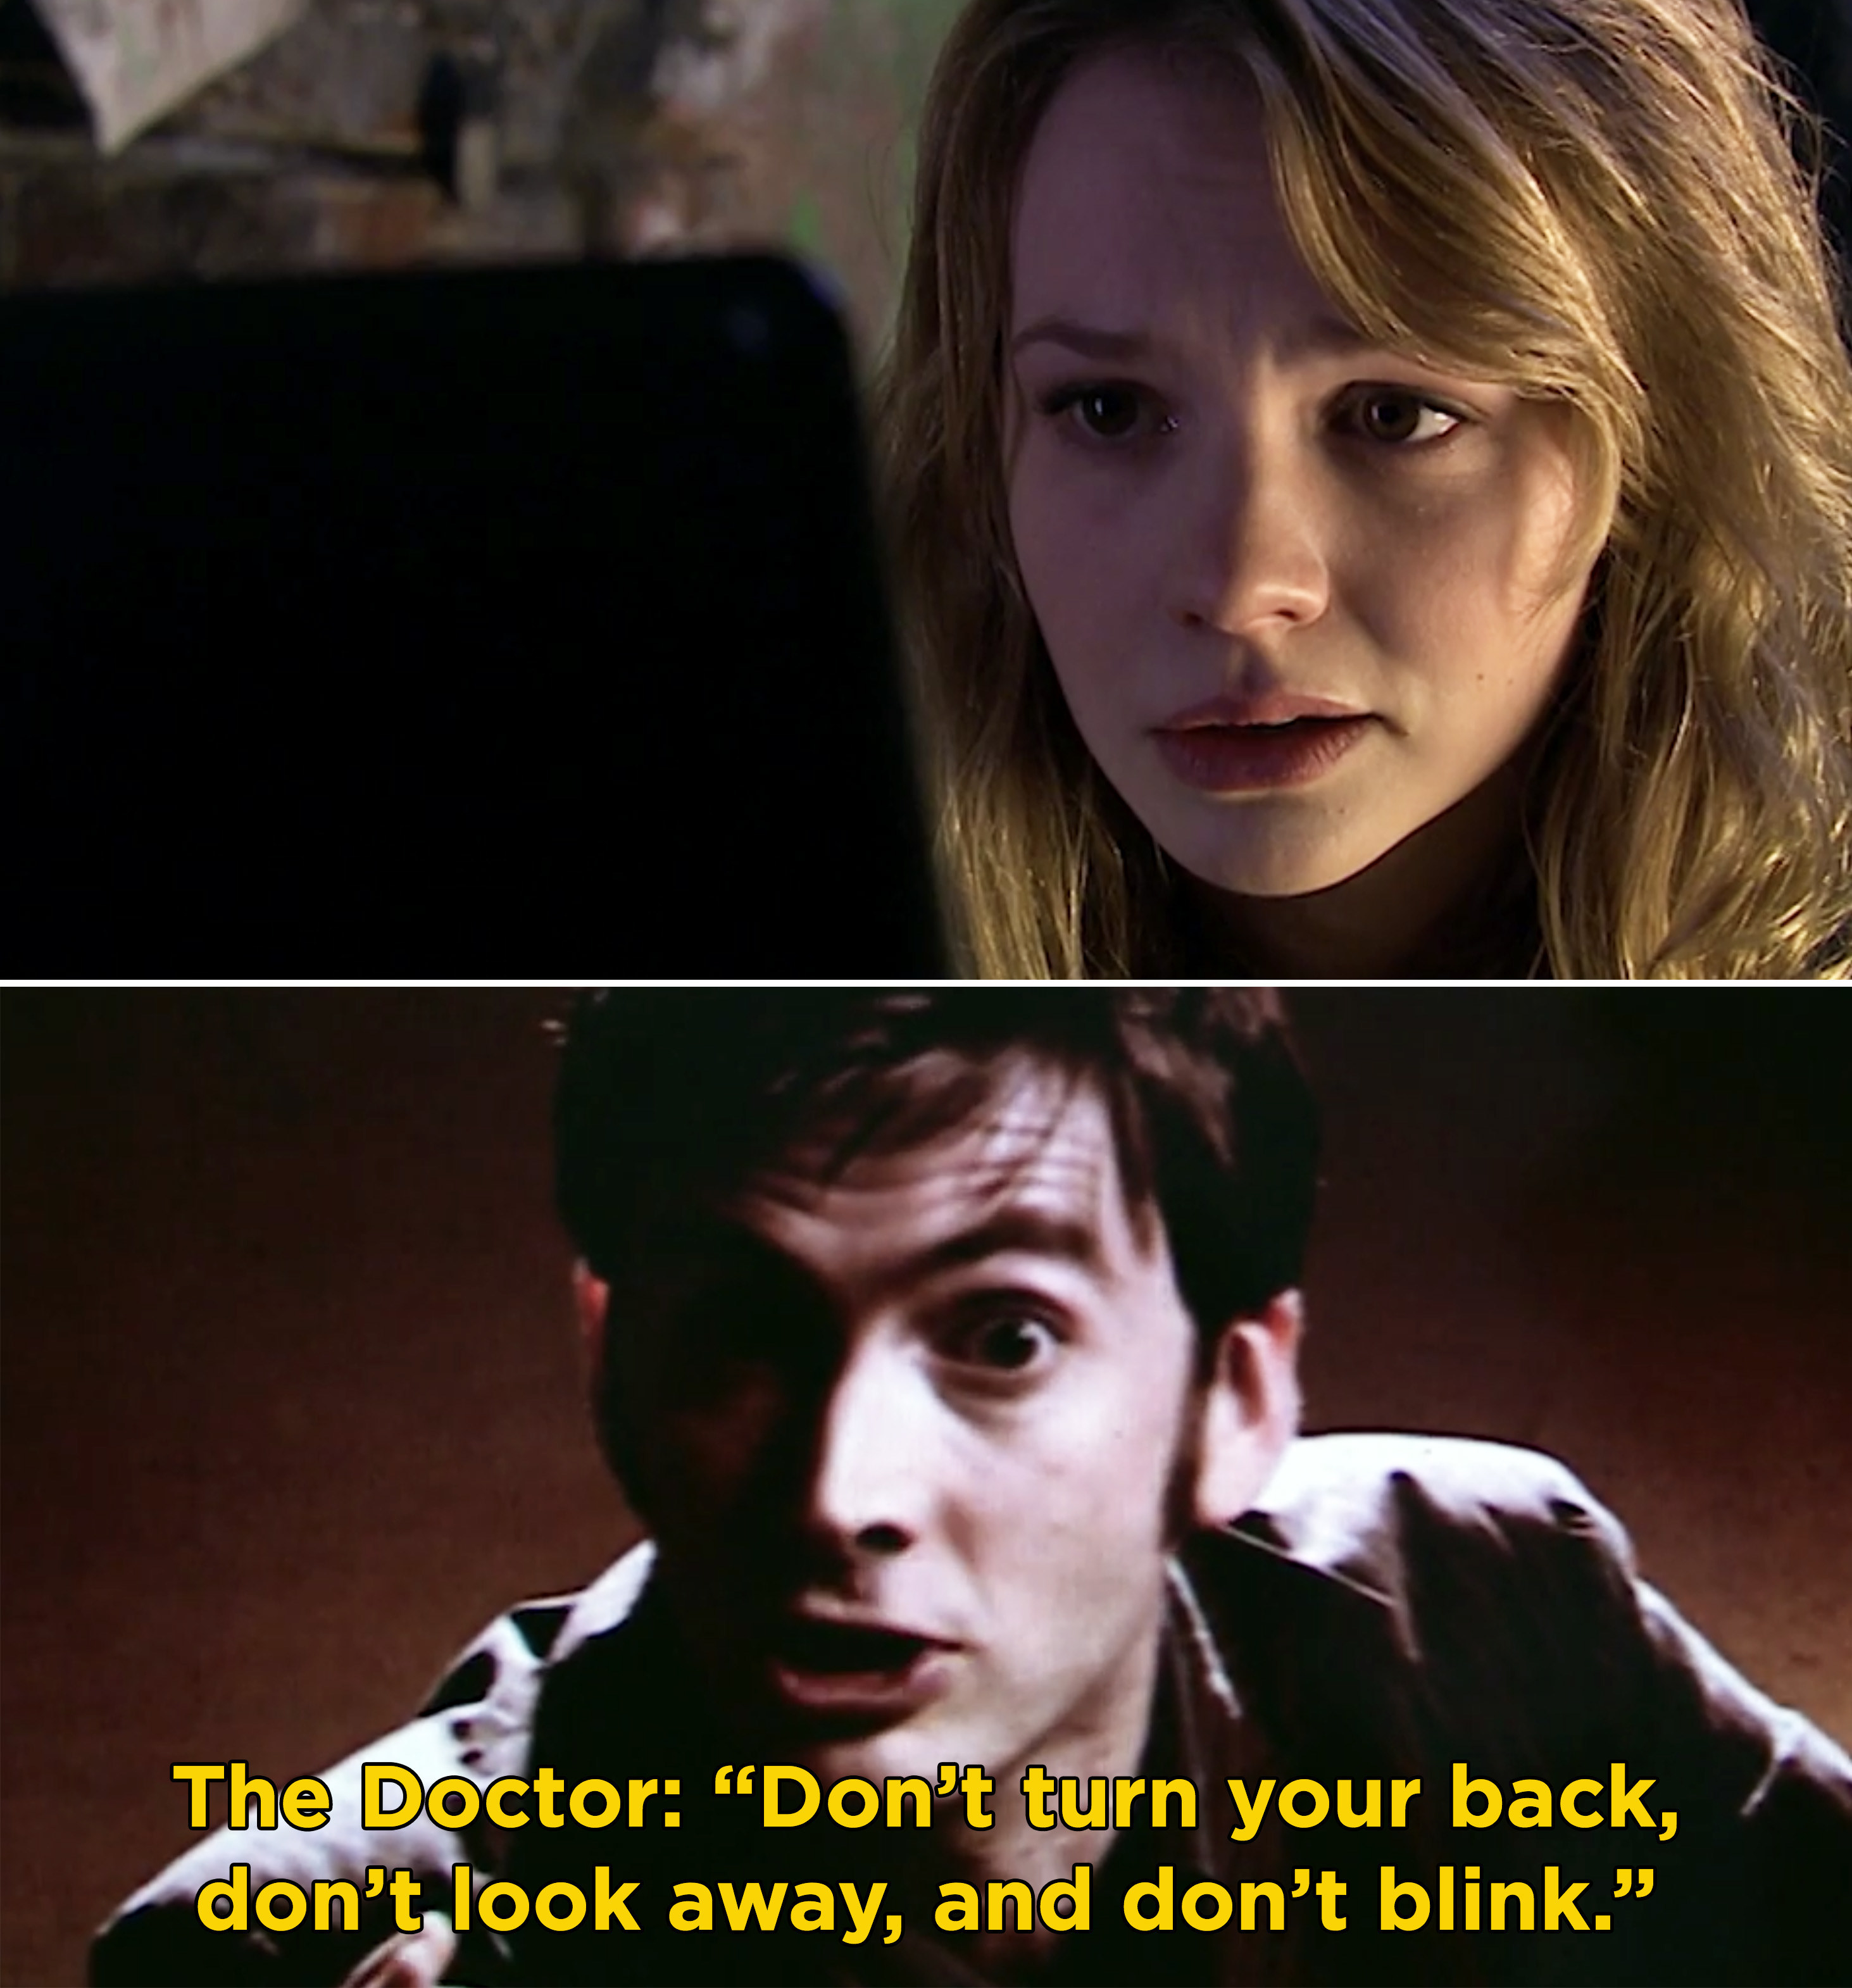 "Sally watching a video of the Doctor, and the Doctor saying, ""Don't turn your back, don't look away, and don't blink"""